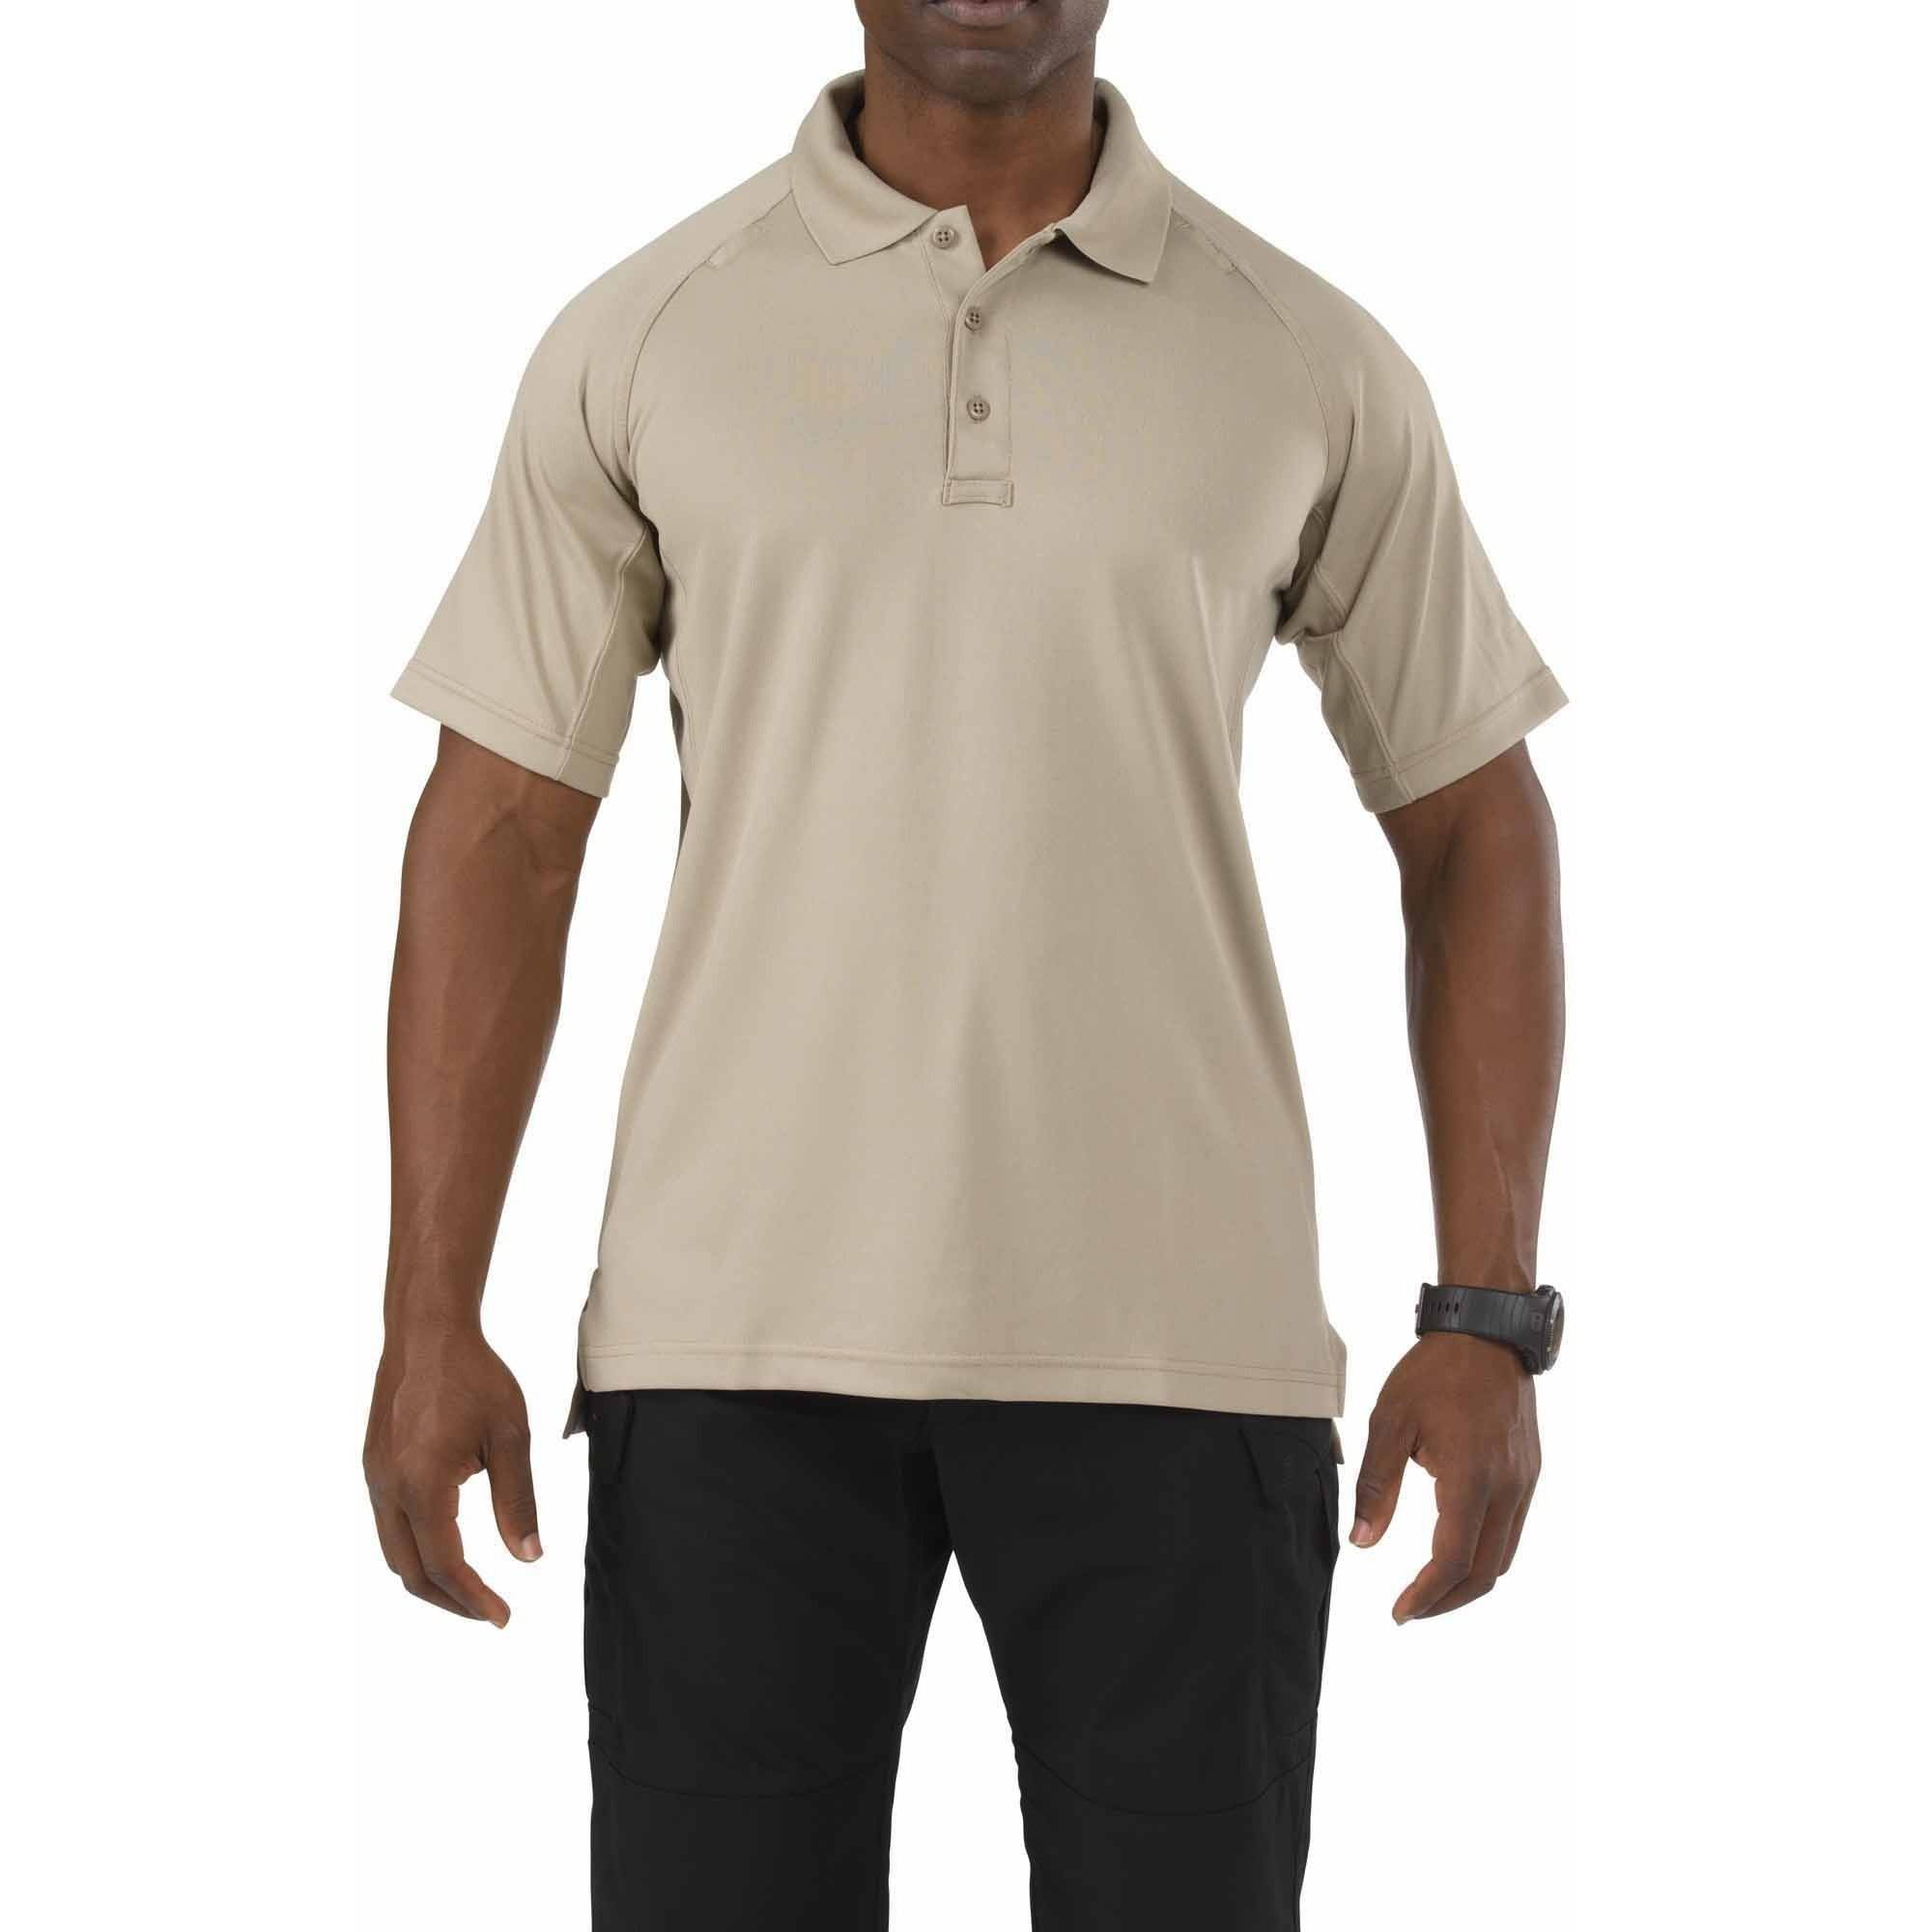 Performance Short Sleeve Polo Shirt, Silver Tan